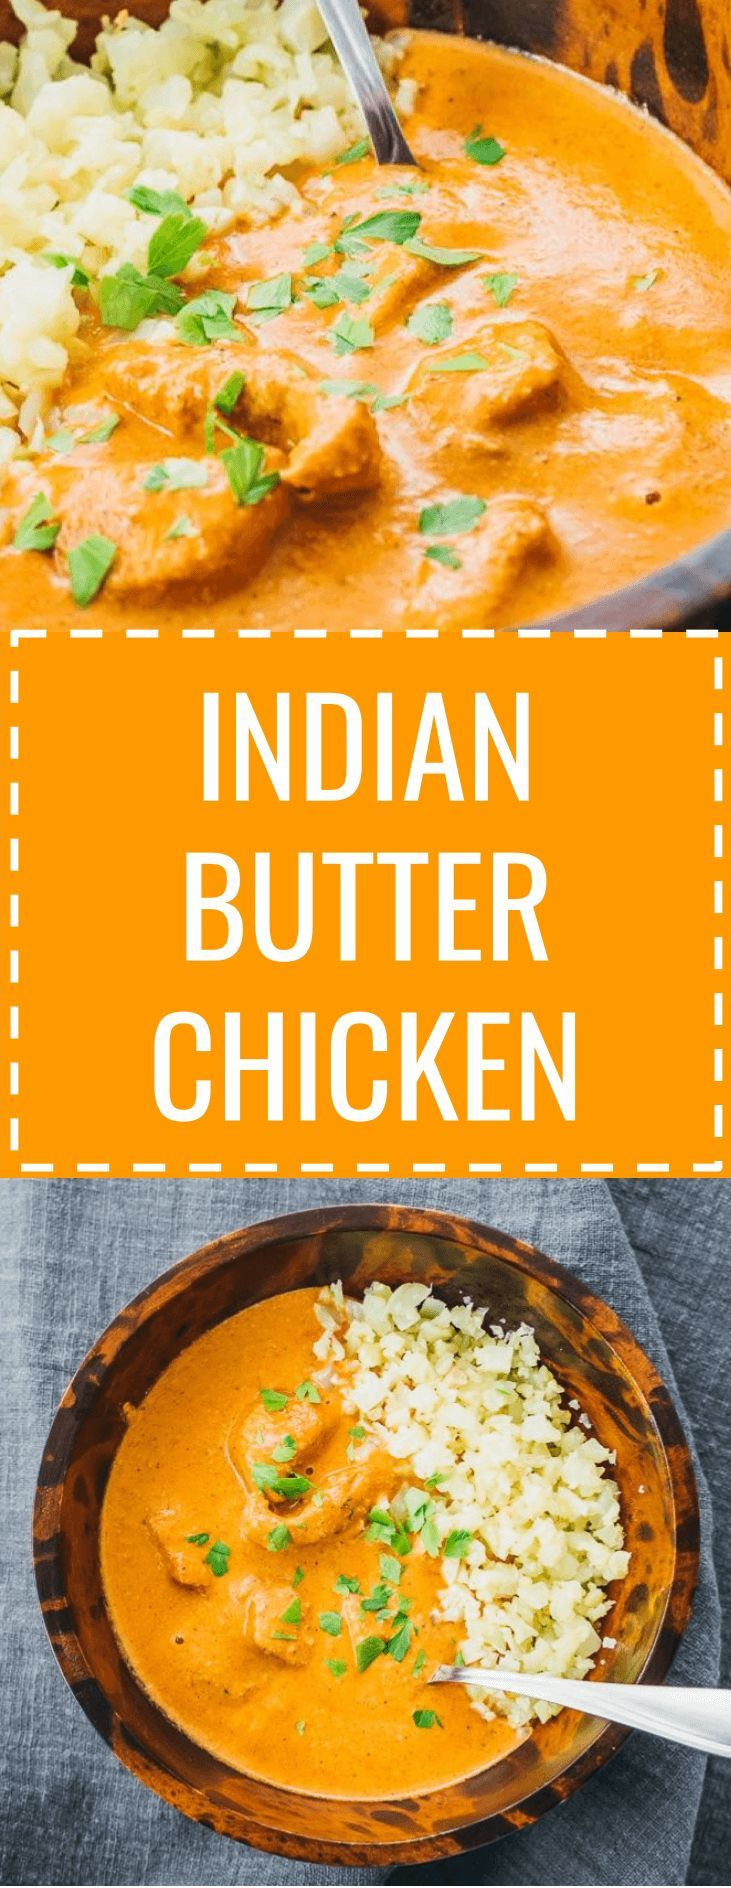 This easy Indian Butter Chicken recipe is one of the best ...